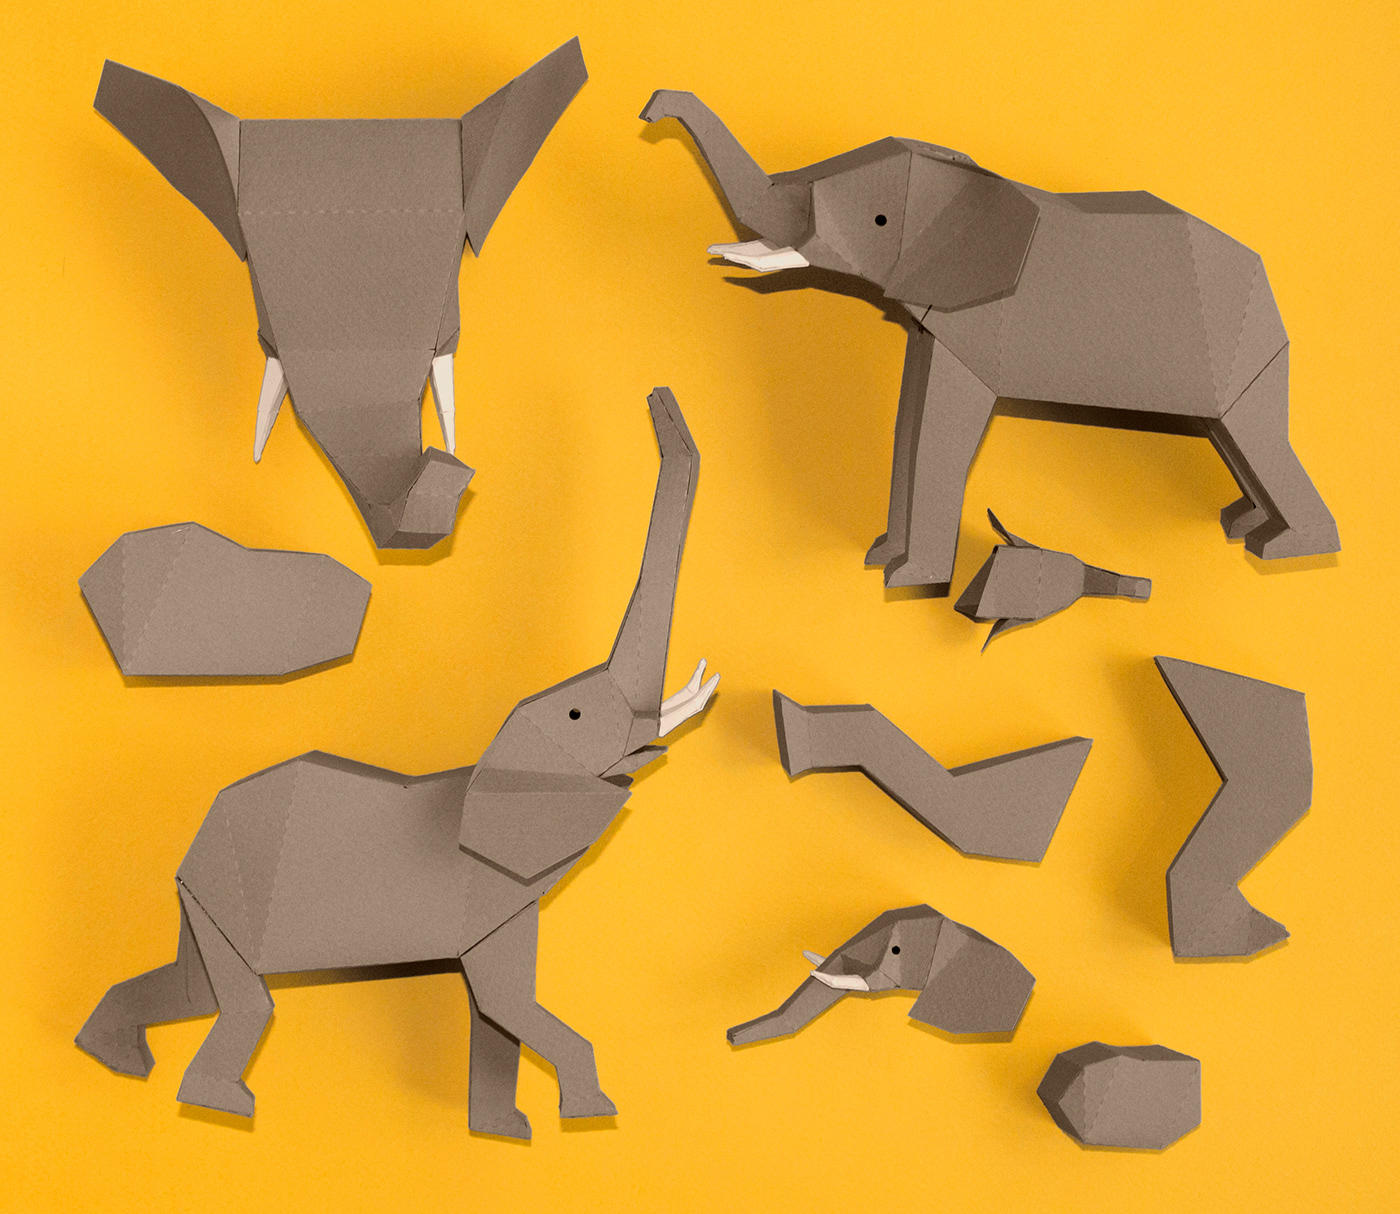 papercraft lowpoly guardabosques amarula posterdesign papersculture elephant paperelephant paperart graphicdesign